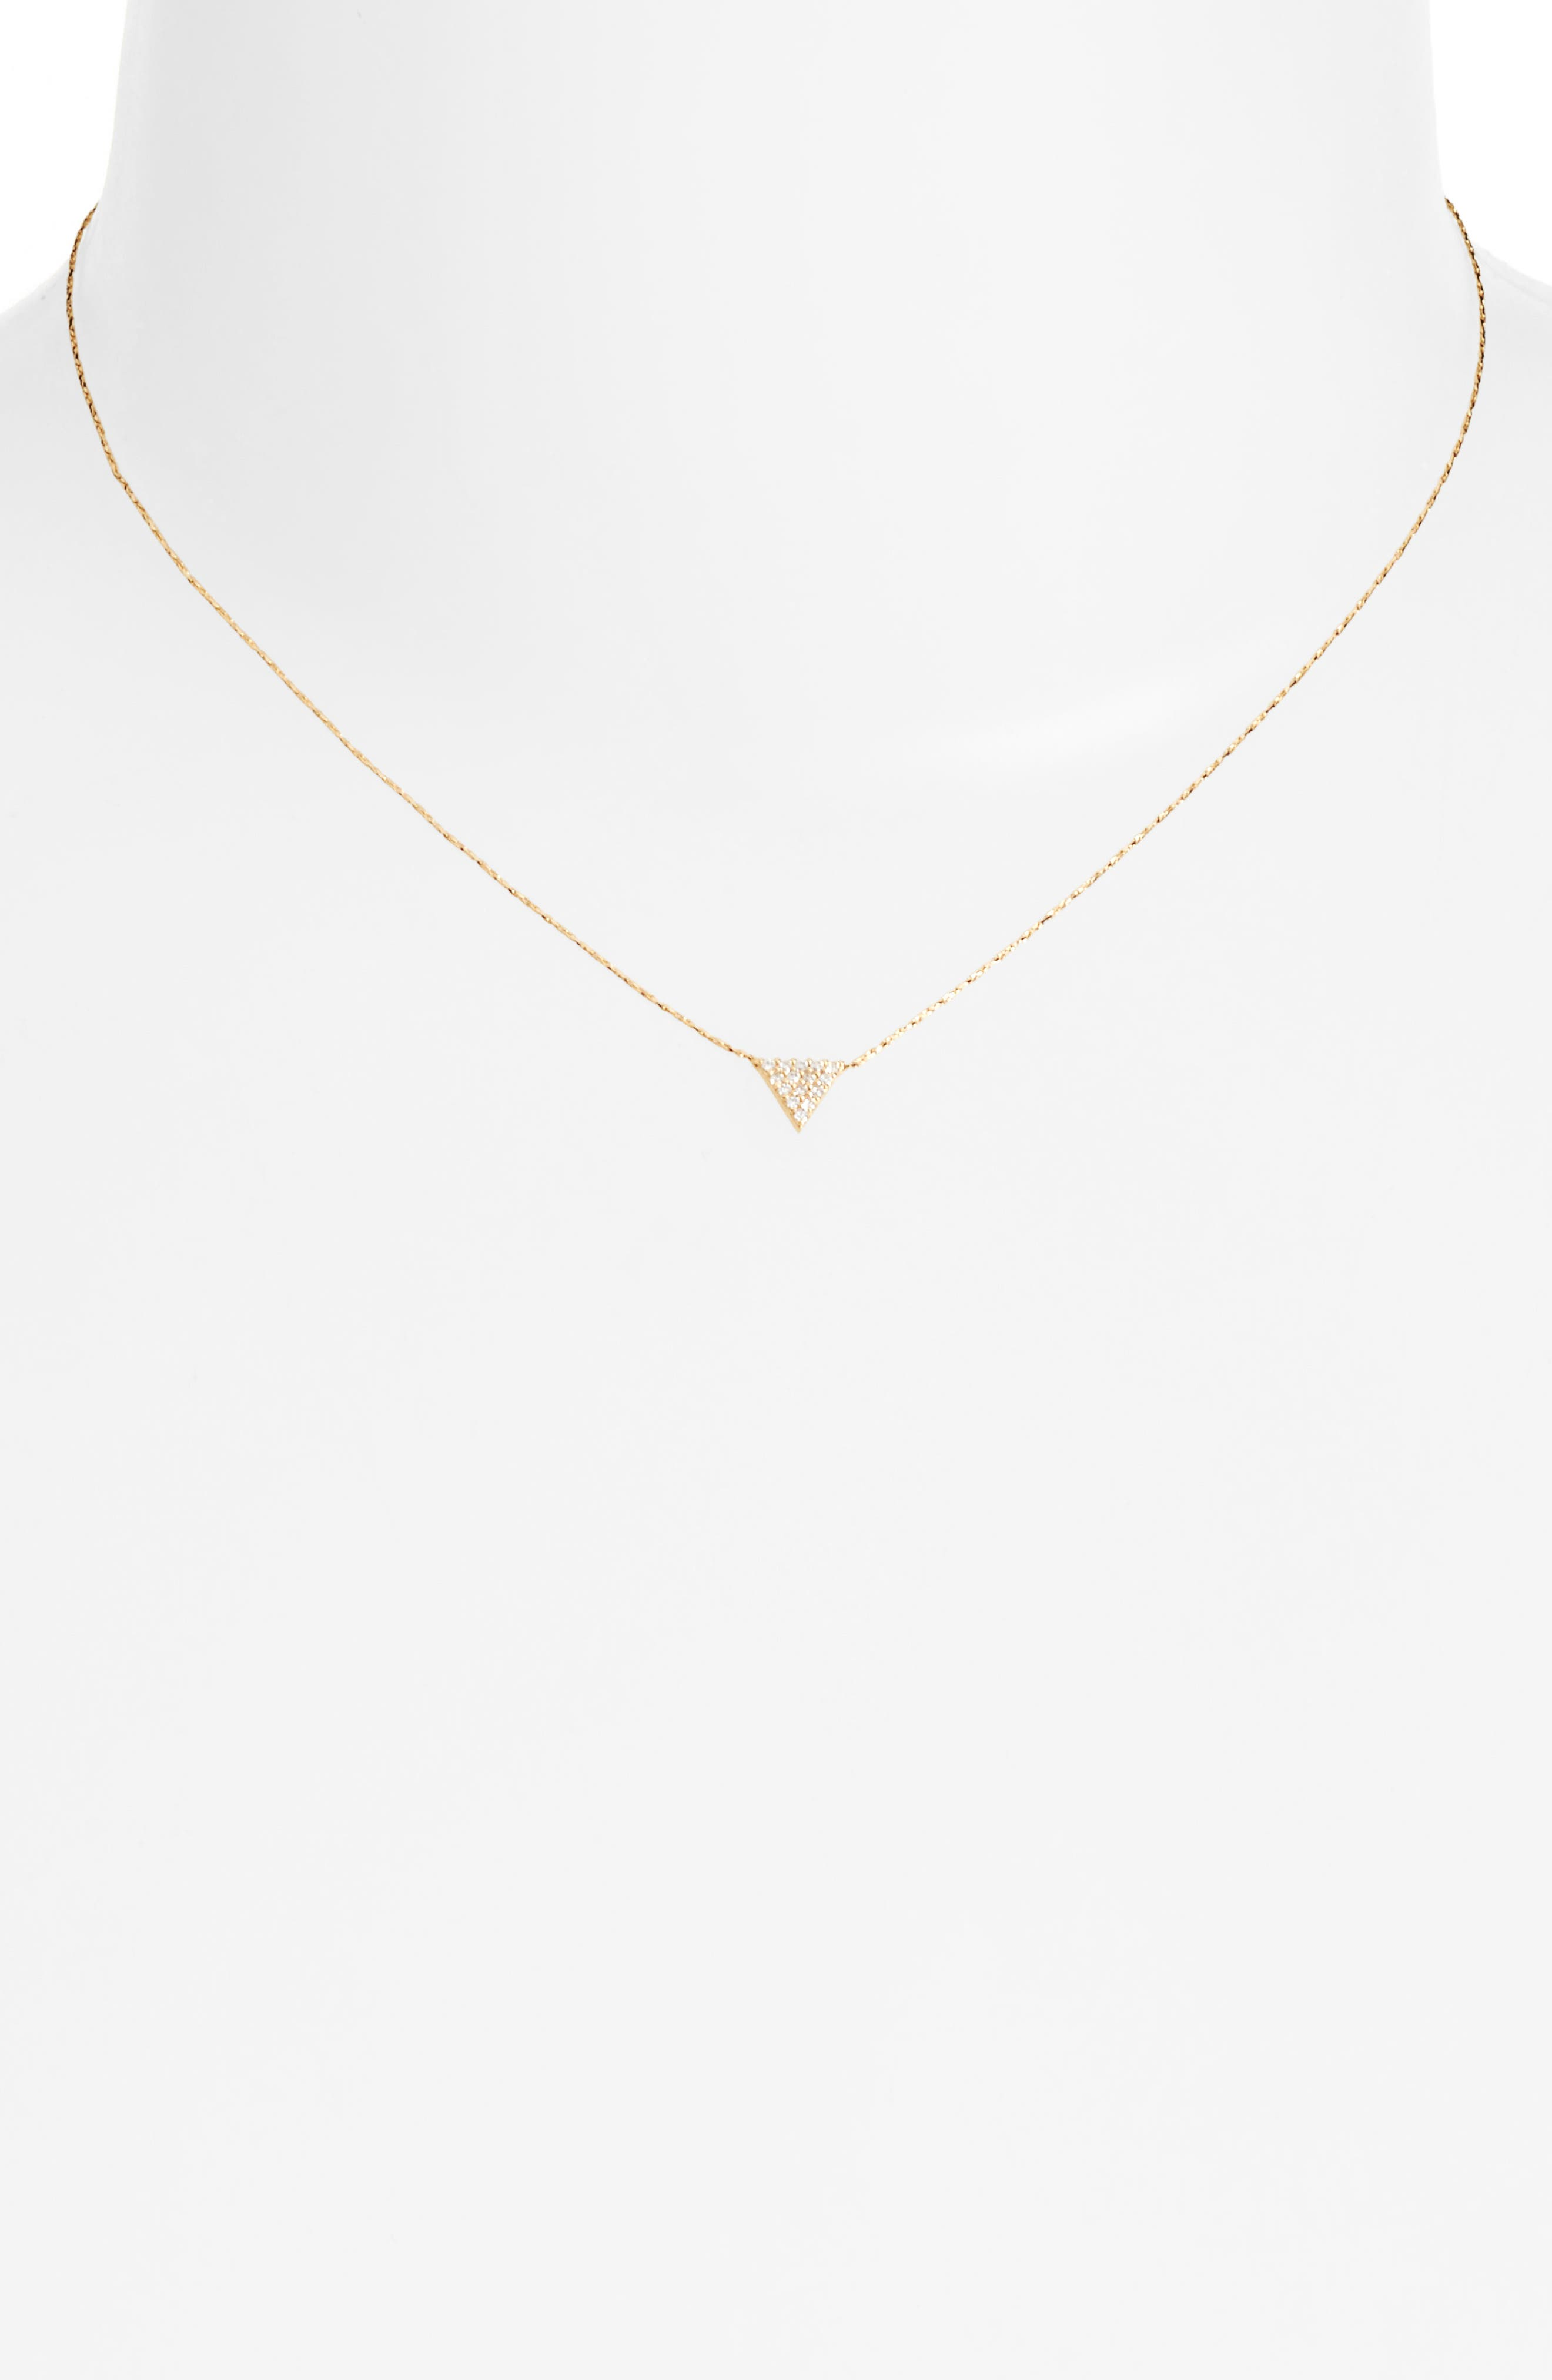 Franz Cubic Zirconia Necklace,                         Main,                         color, Gold/ Clear